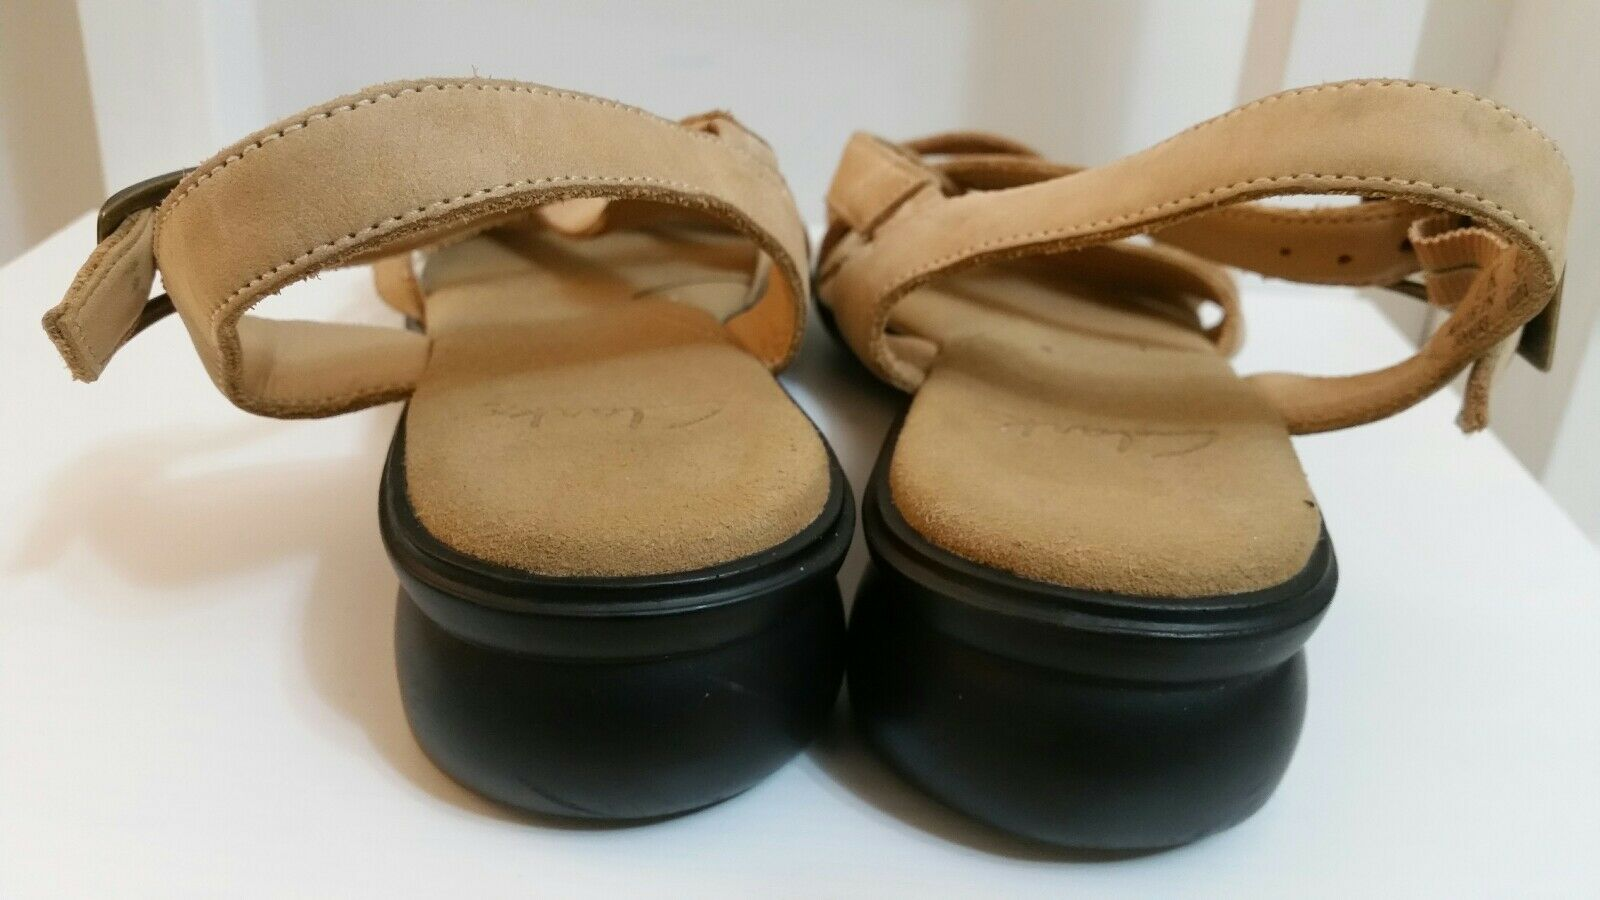 d9d9e3e79c9 clarks womens brown faux leather sandals size 4.5 37.5 mid heel strappy  shoes